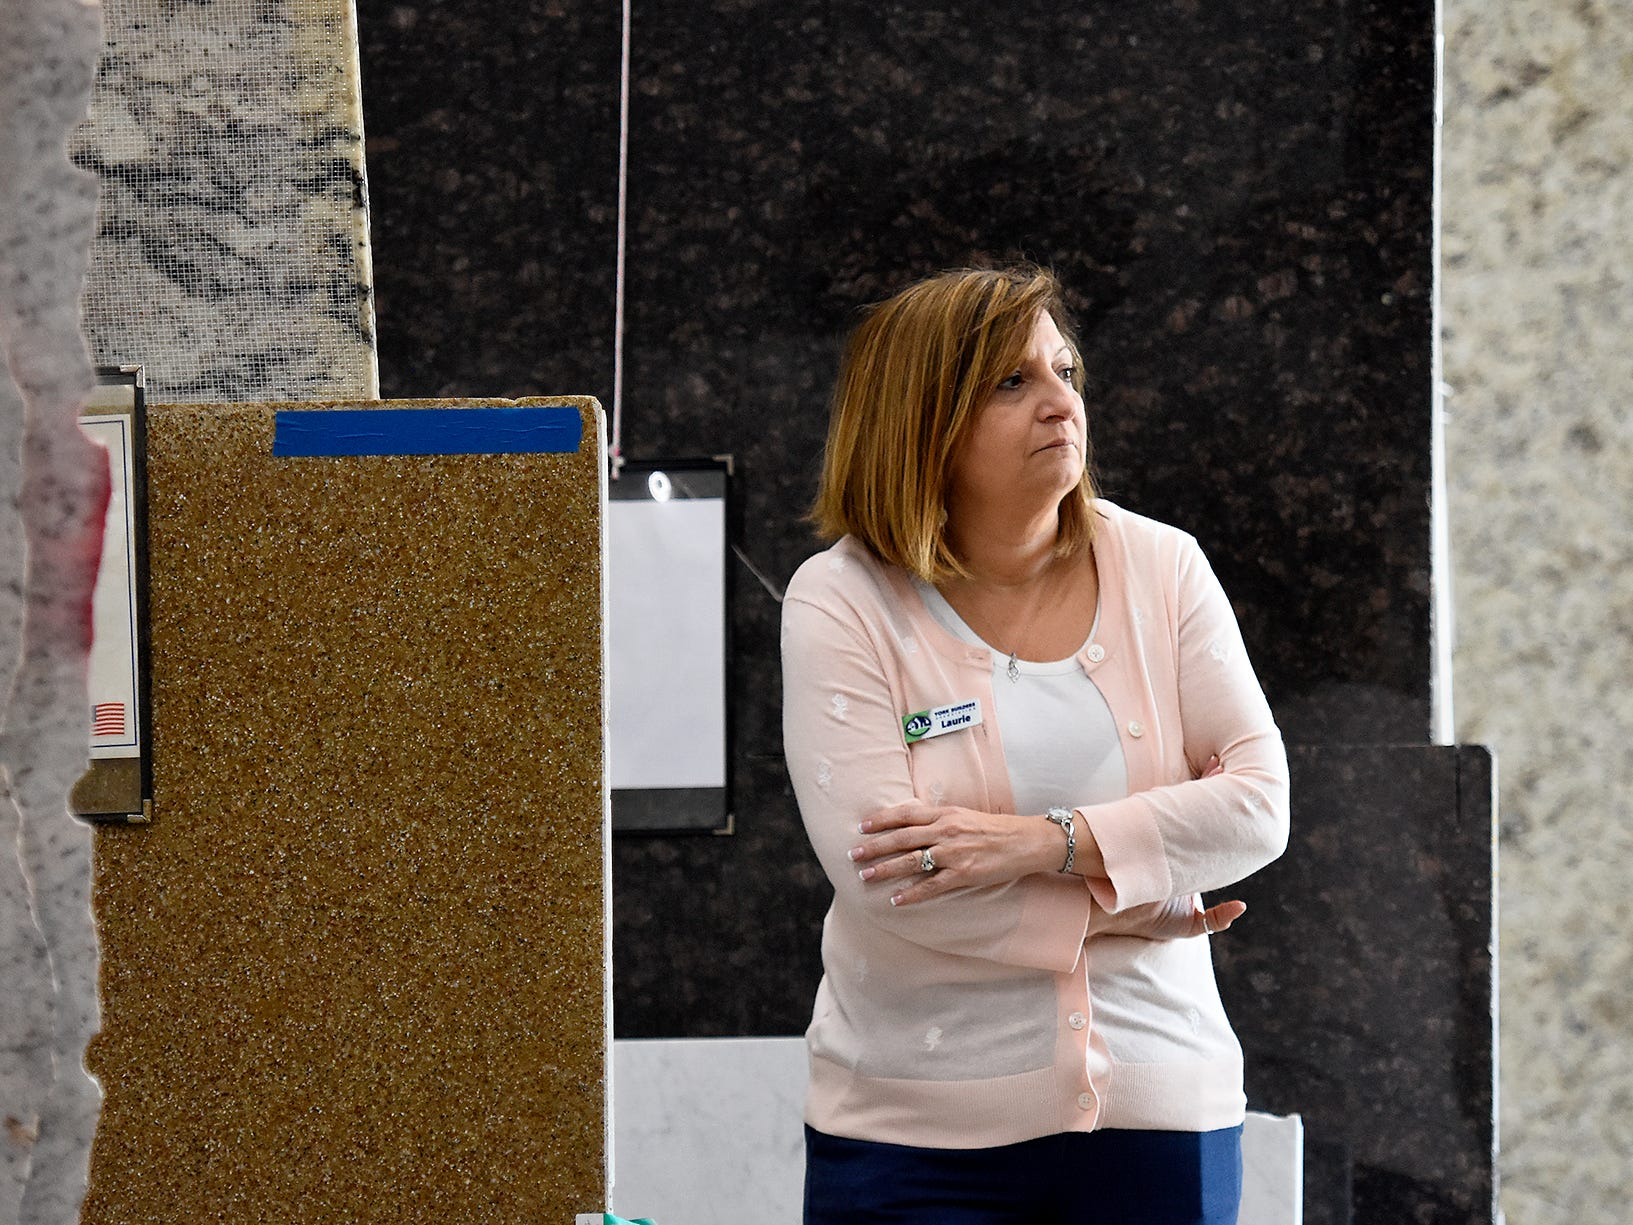 Laurie Lourie, York Builders Association Executive Officer, listens to a presentation at Frank's Marble & Granite, in Red Lion, during the association's 2nd Annual Construction Career Day Monday, April 8, 2019. The goal of the program is to raise student-awareness about local career opportunities in the construction field. Association members host the students. The association has planned similar events at various companies through April 17. Nine area high schools are participating in the program, according to the builders association. Bill Kalina photo